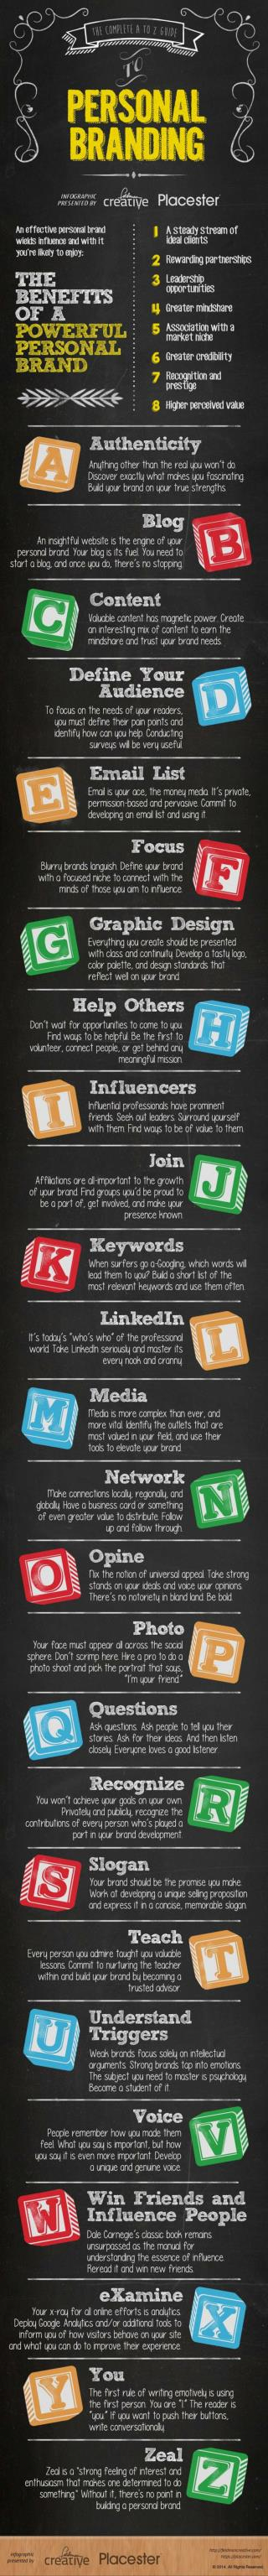 Your Personal Branding Guide - A to Z